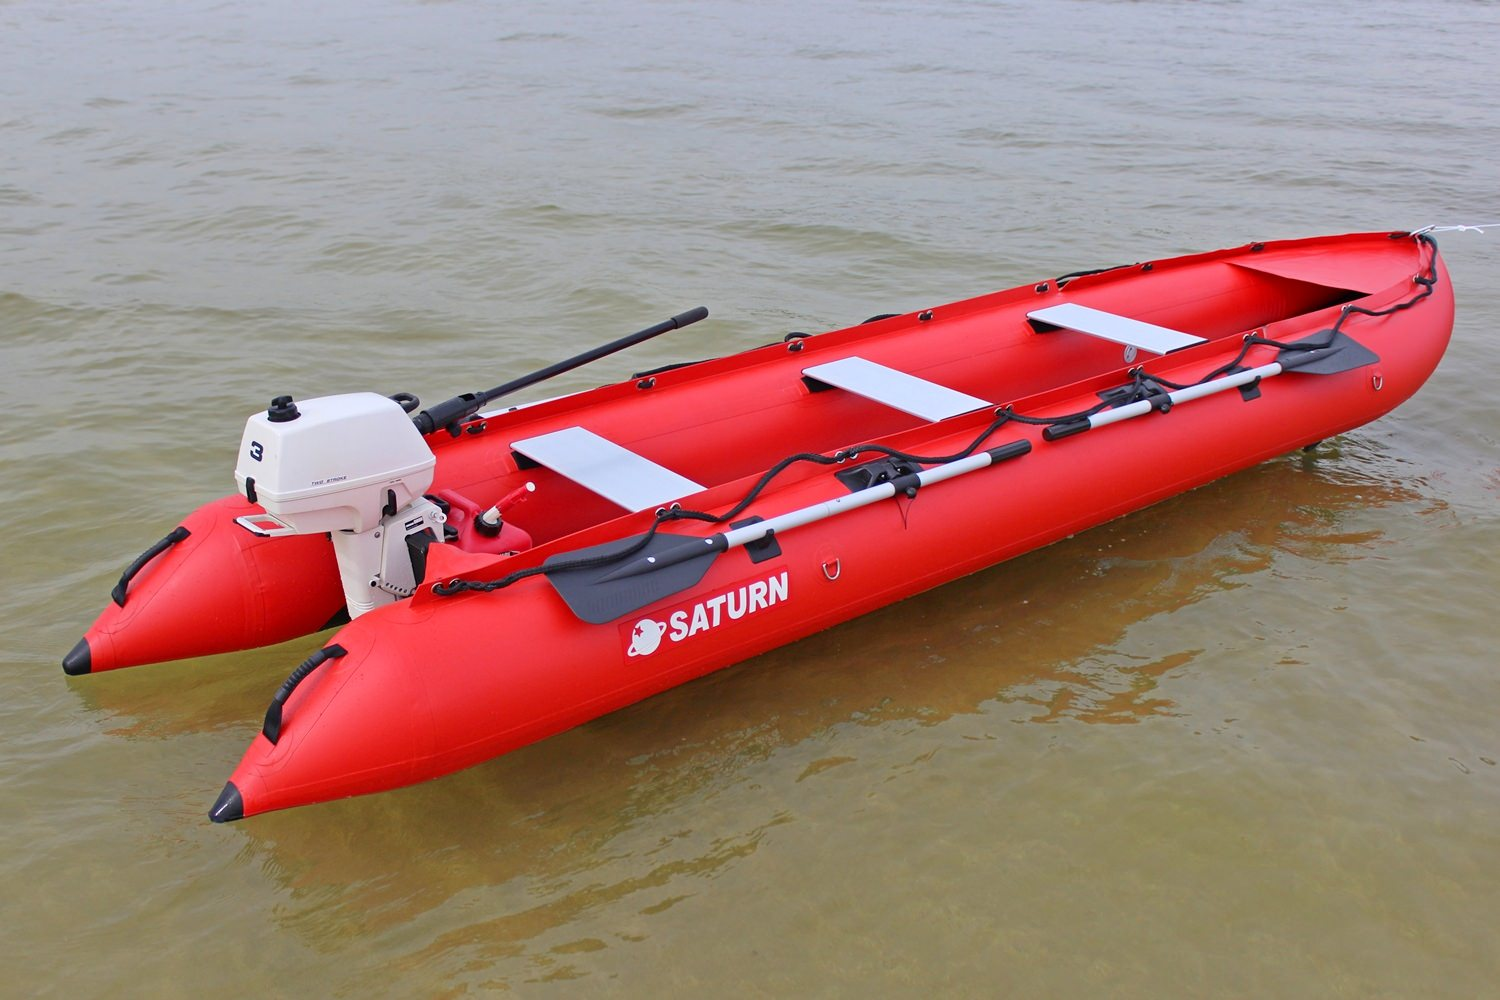 15' Saturn KaBoat SK470 - Red - On the Water with 3 HP Outboard Motor